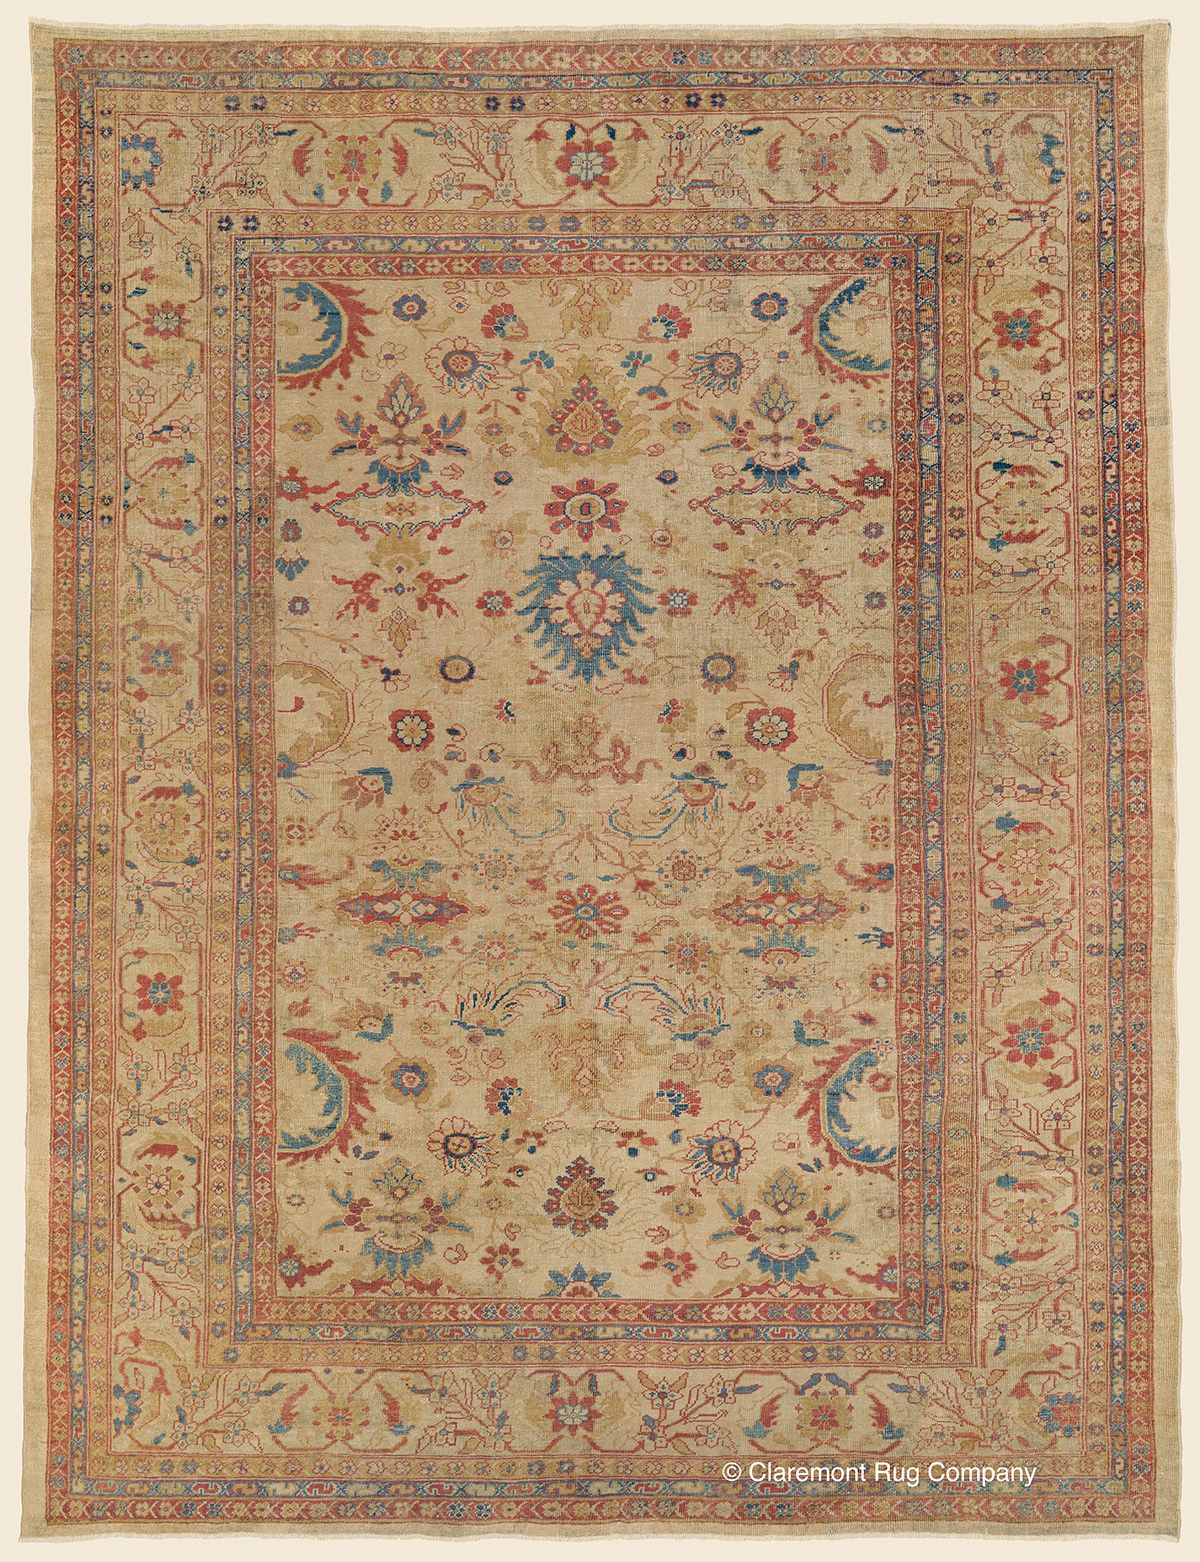 Sultanabad 9 6 X 12 8 Circa 1875 West Central Persian Antique Rug Claremont Rug Company Click To Rug Company Persian Rug Designs Claremont Rug Company